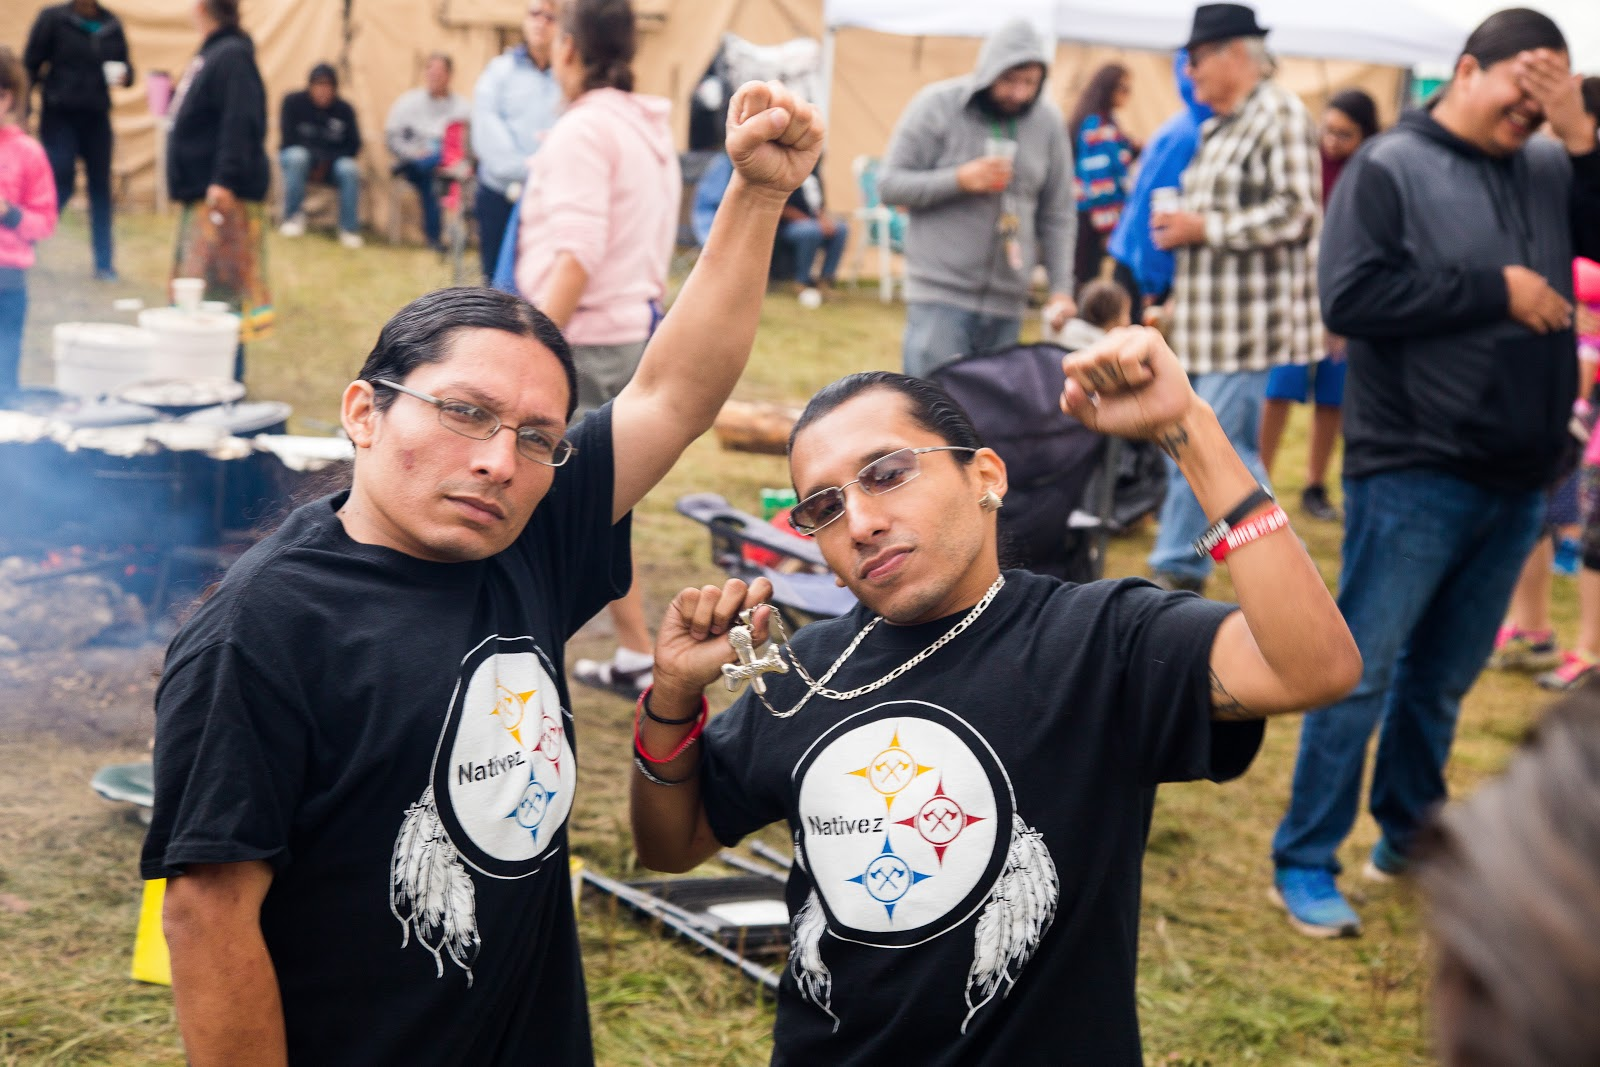 Native rappers Lil Mike and Funny Bone were on hand to lend to support to the cause. (Photo: Alex Hamer)